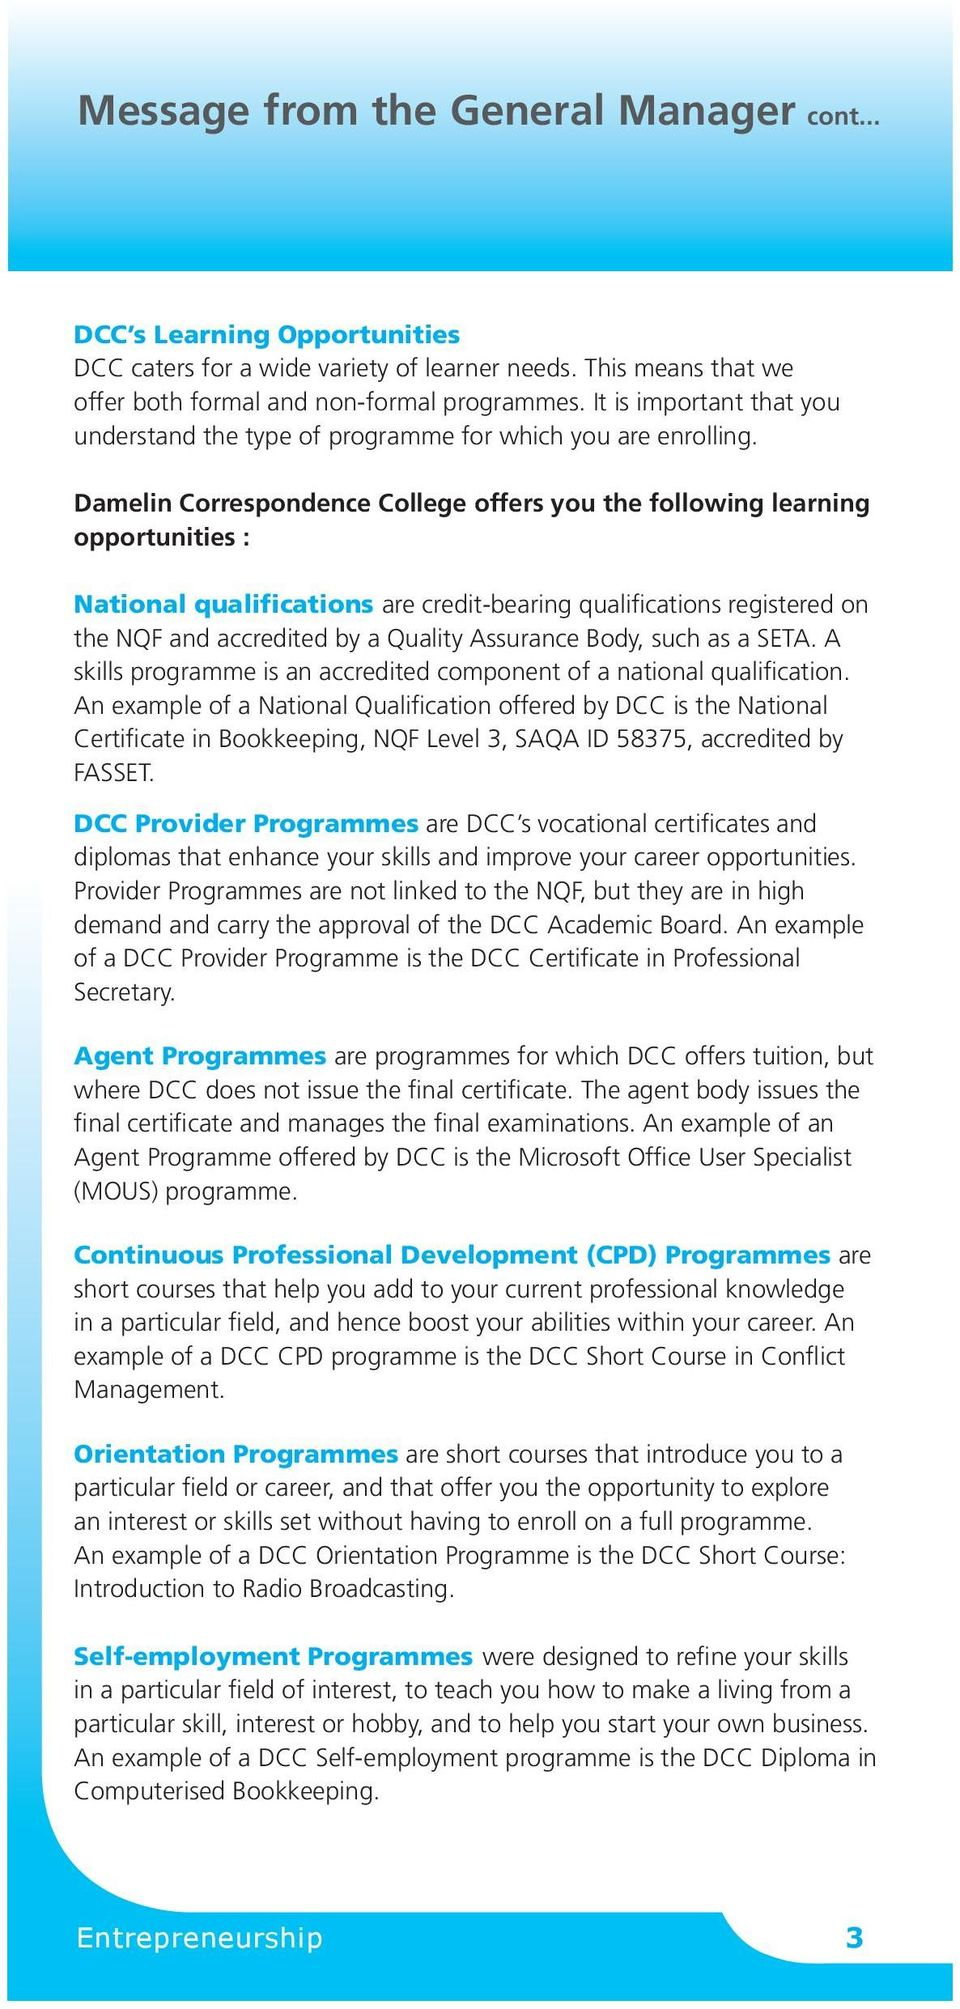 Damelin Correspondence College offers you the following learning opportunities : National qualifications are credit-bearing qualifications registered on the NQF and accredited by a Quality Assurance